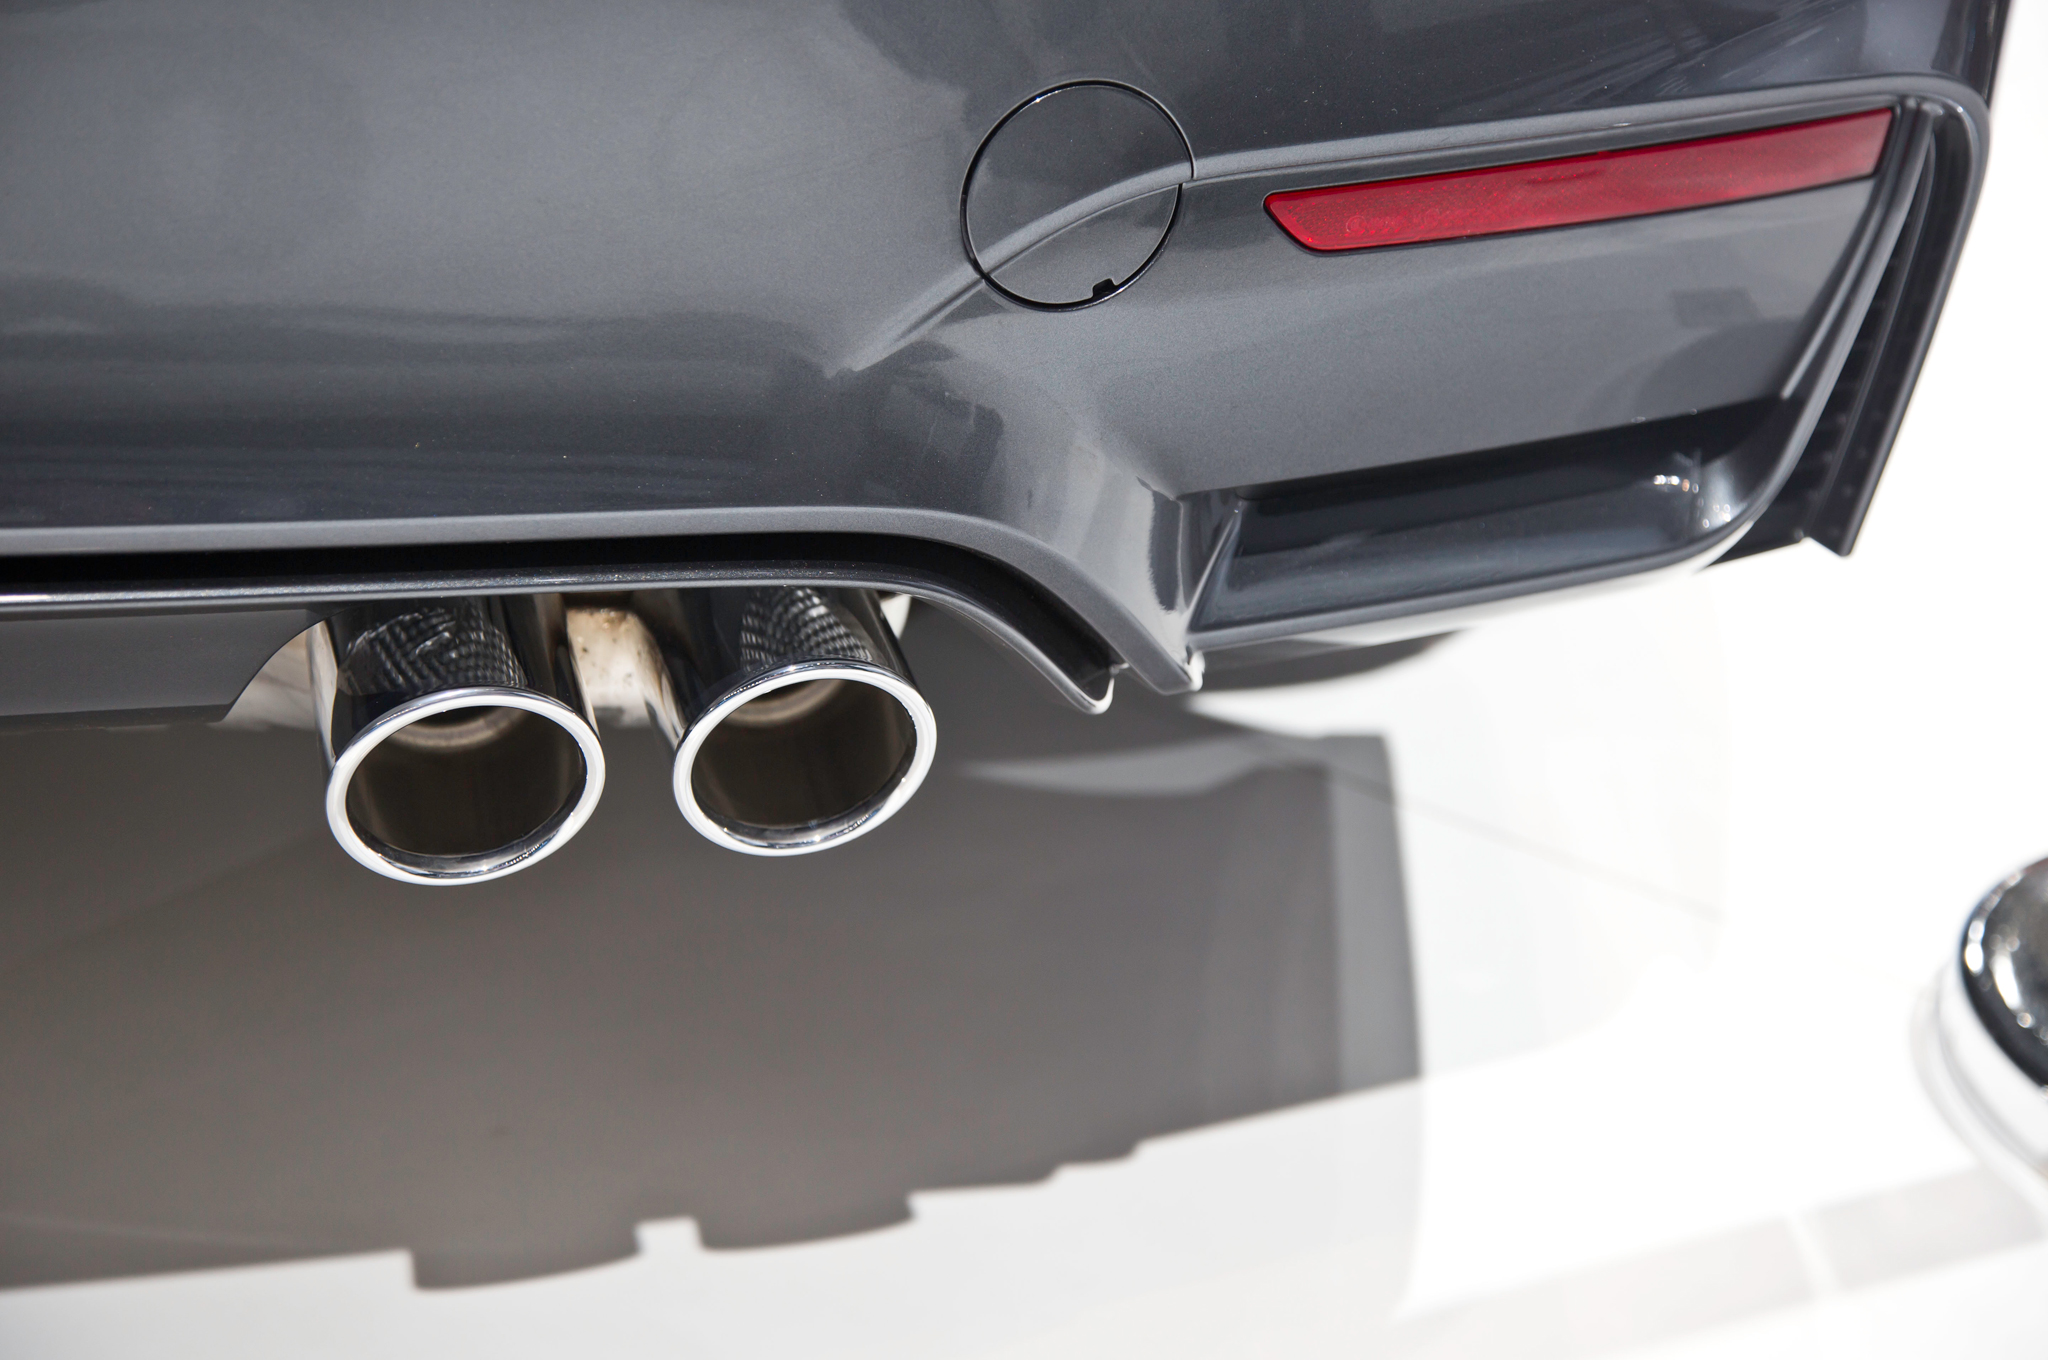 2015 Bmw M4 Convertible Tailpipes Details (Photo 4 of 50)